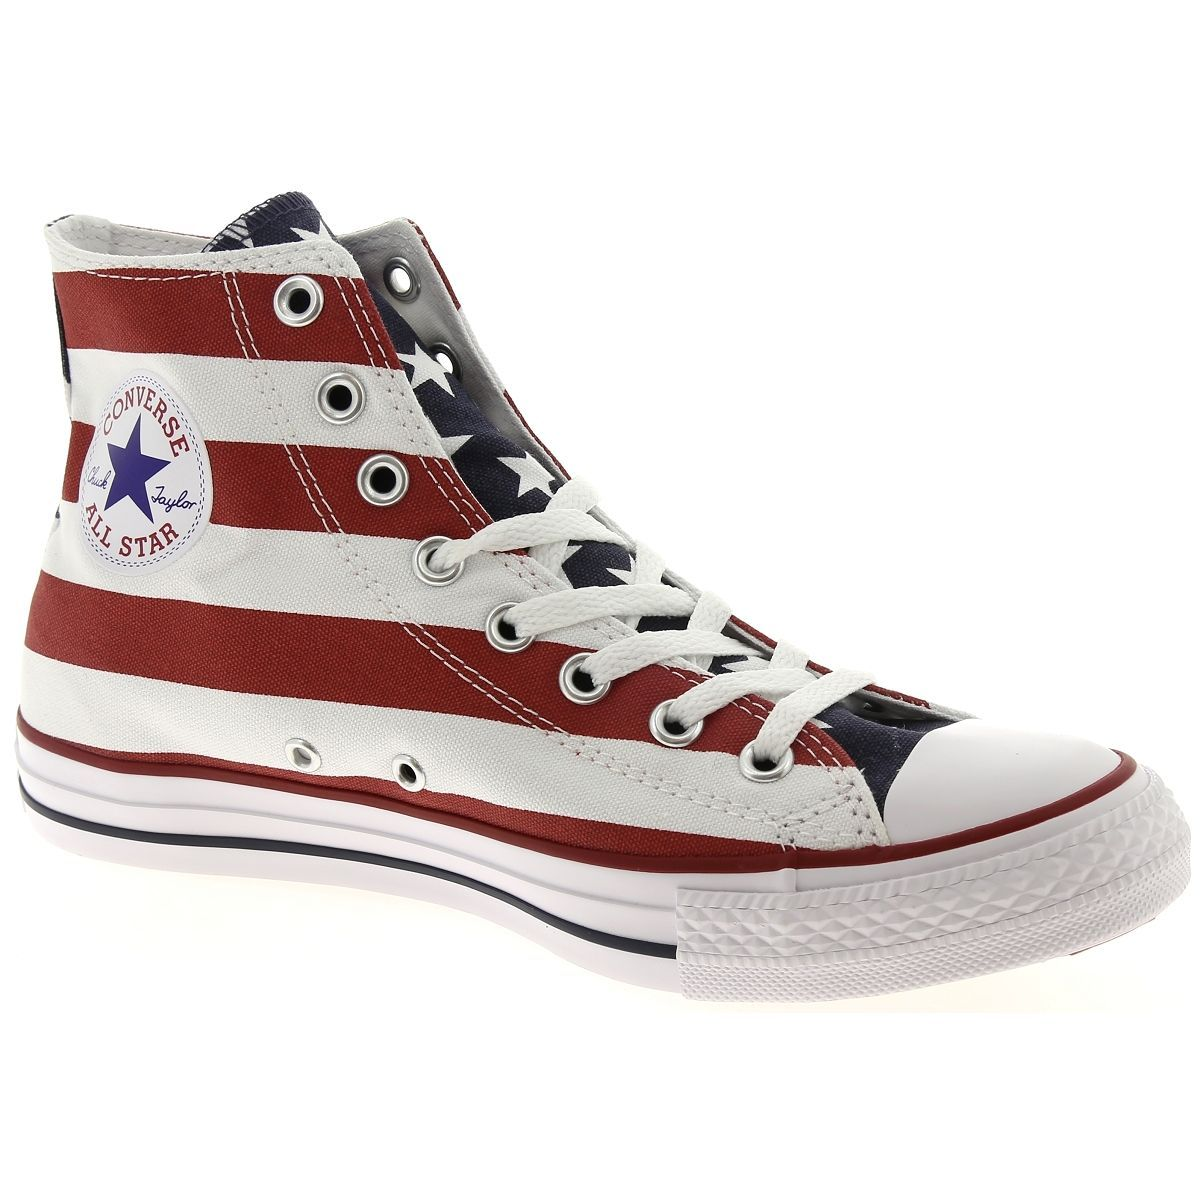 Baskets Montantes Converse All Star en 2019 | Products